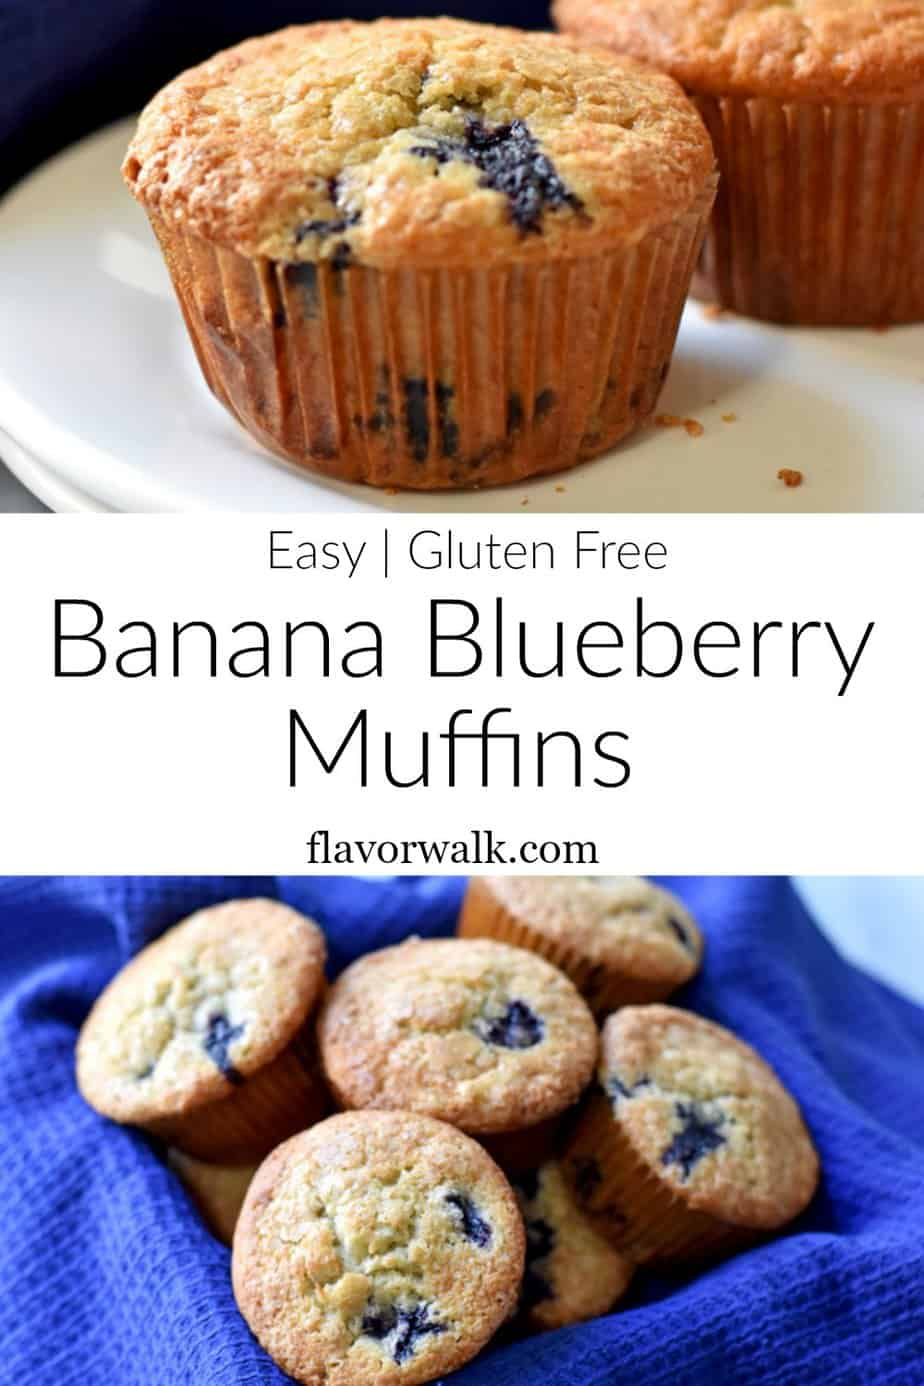 Top image is close up of 1 gluten free banana blueberry muffin, middle image is text overlay, bottom image is basket lined with a blue kitchen towel, filled with gluten free banana blueberry muffins.